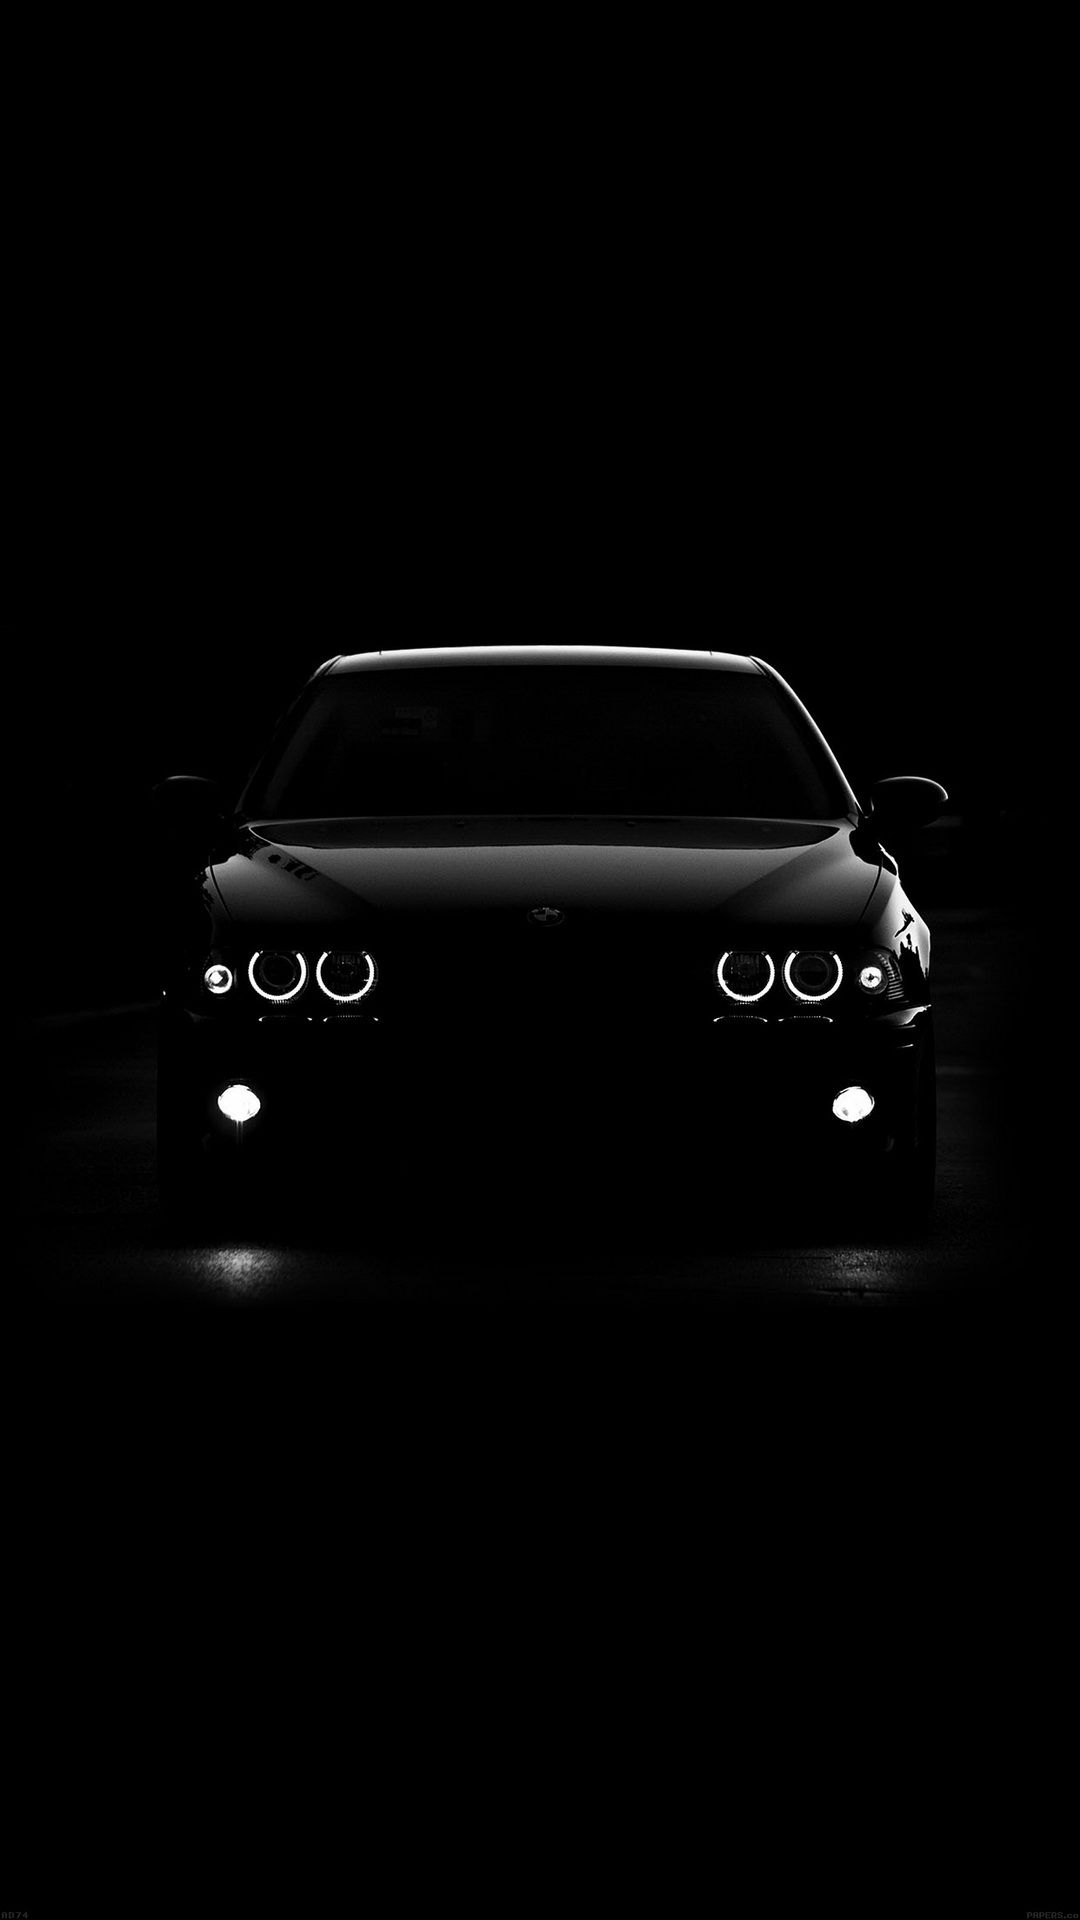 Bmw Black Car High Quality Htc One Wallpapers And Ford Mustang Wallpaper - Medium